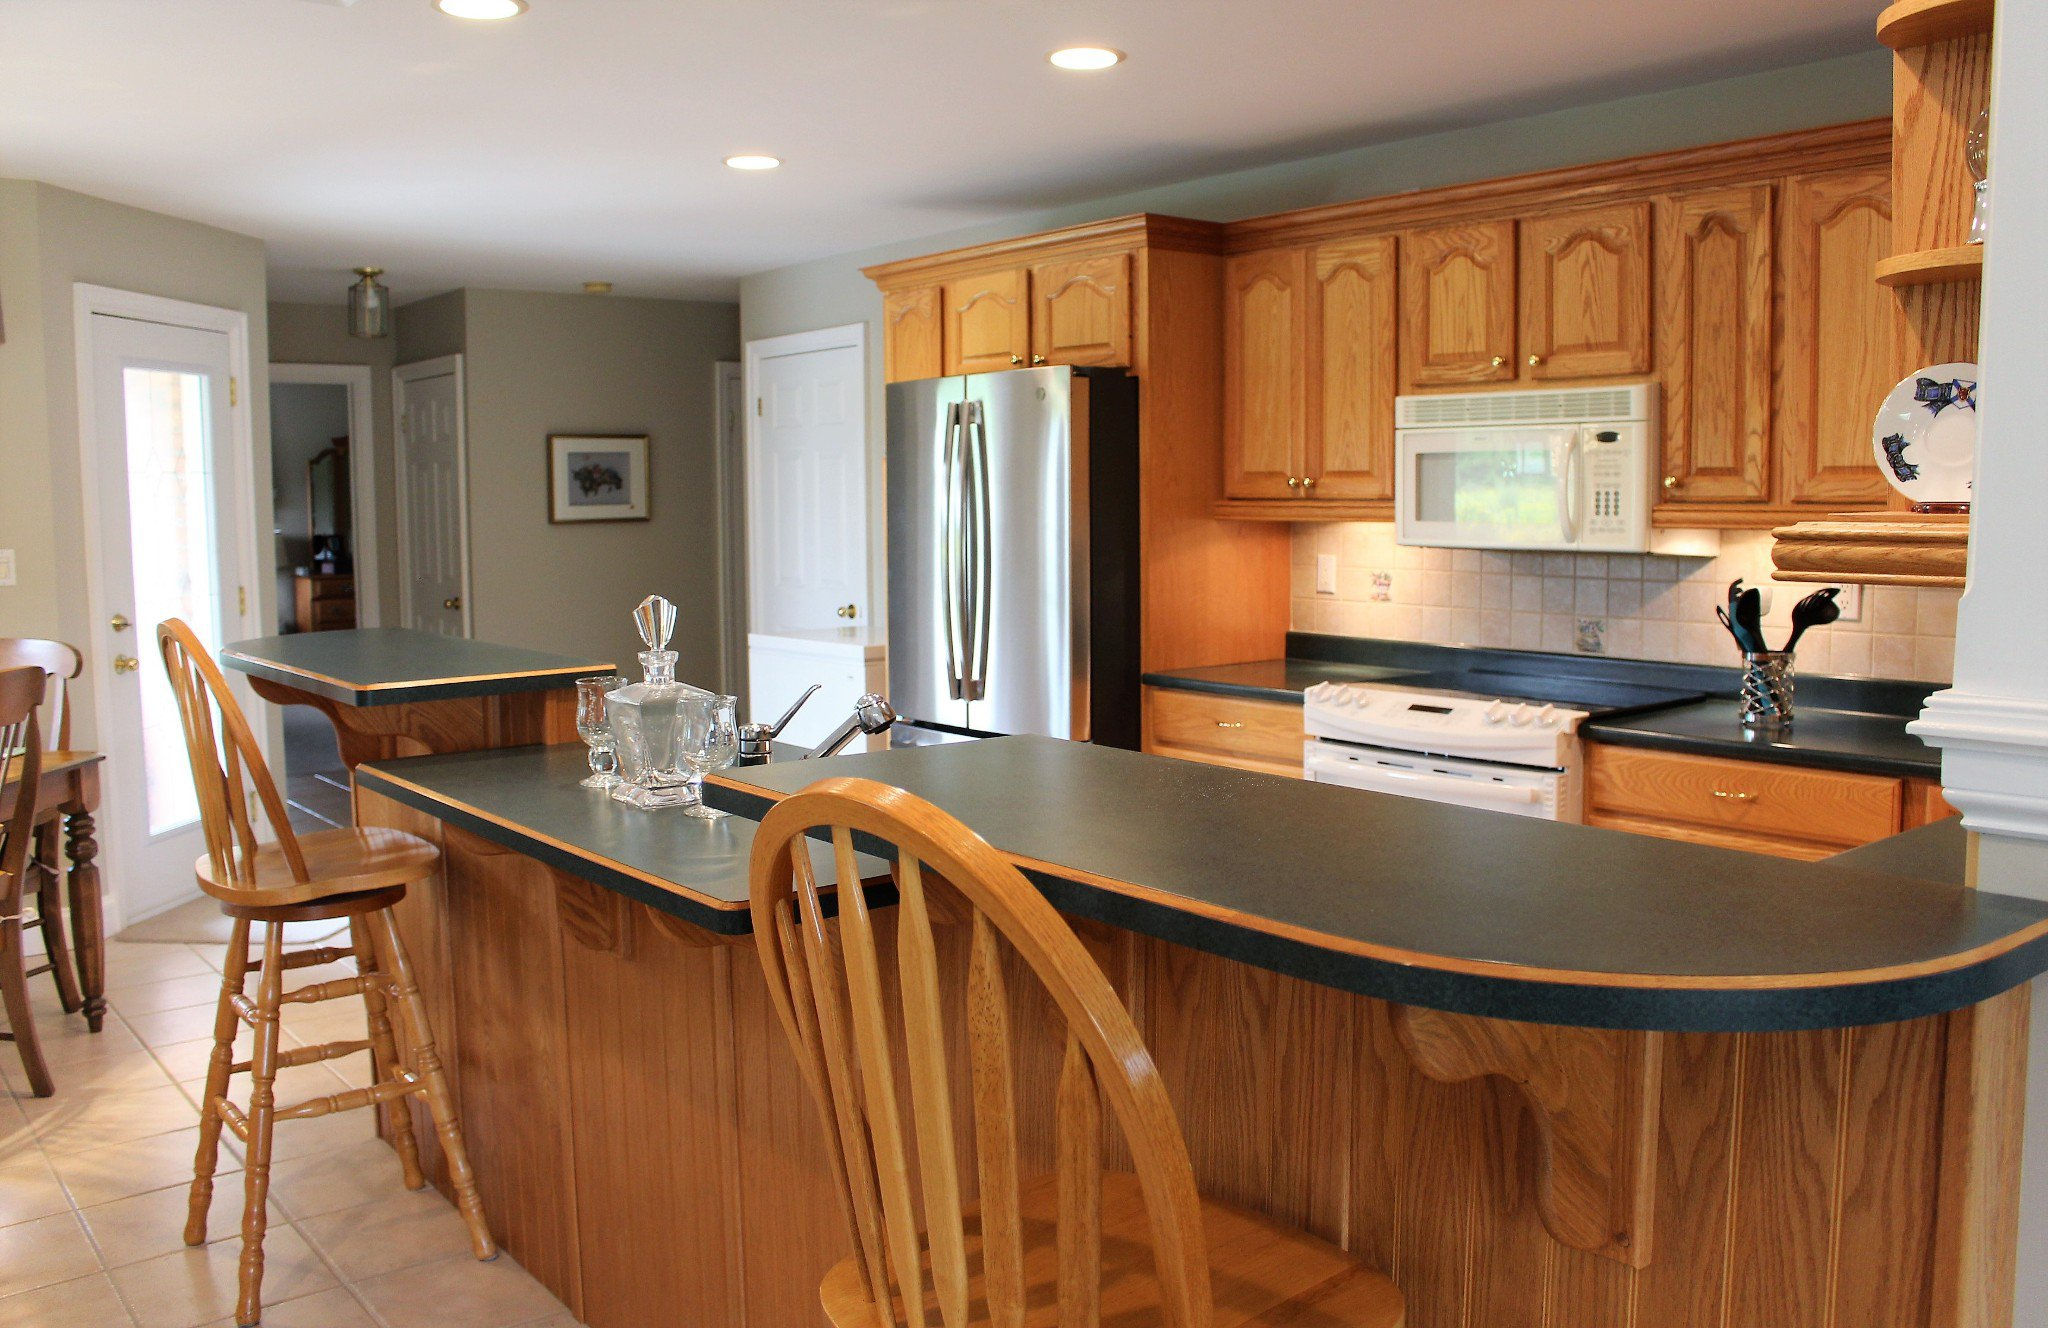 Photo 13: Photos: 159 Nawautin Drive in Grafton: Residential Detached for sale : MLS®# 40012652